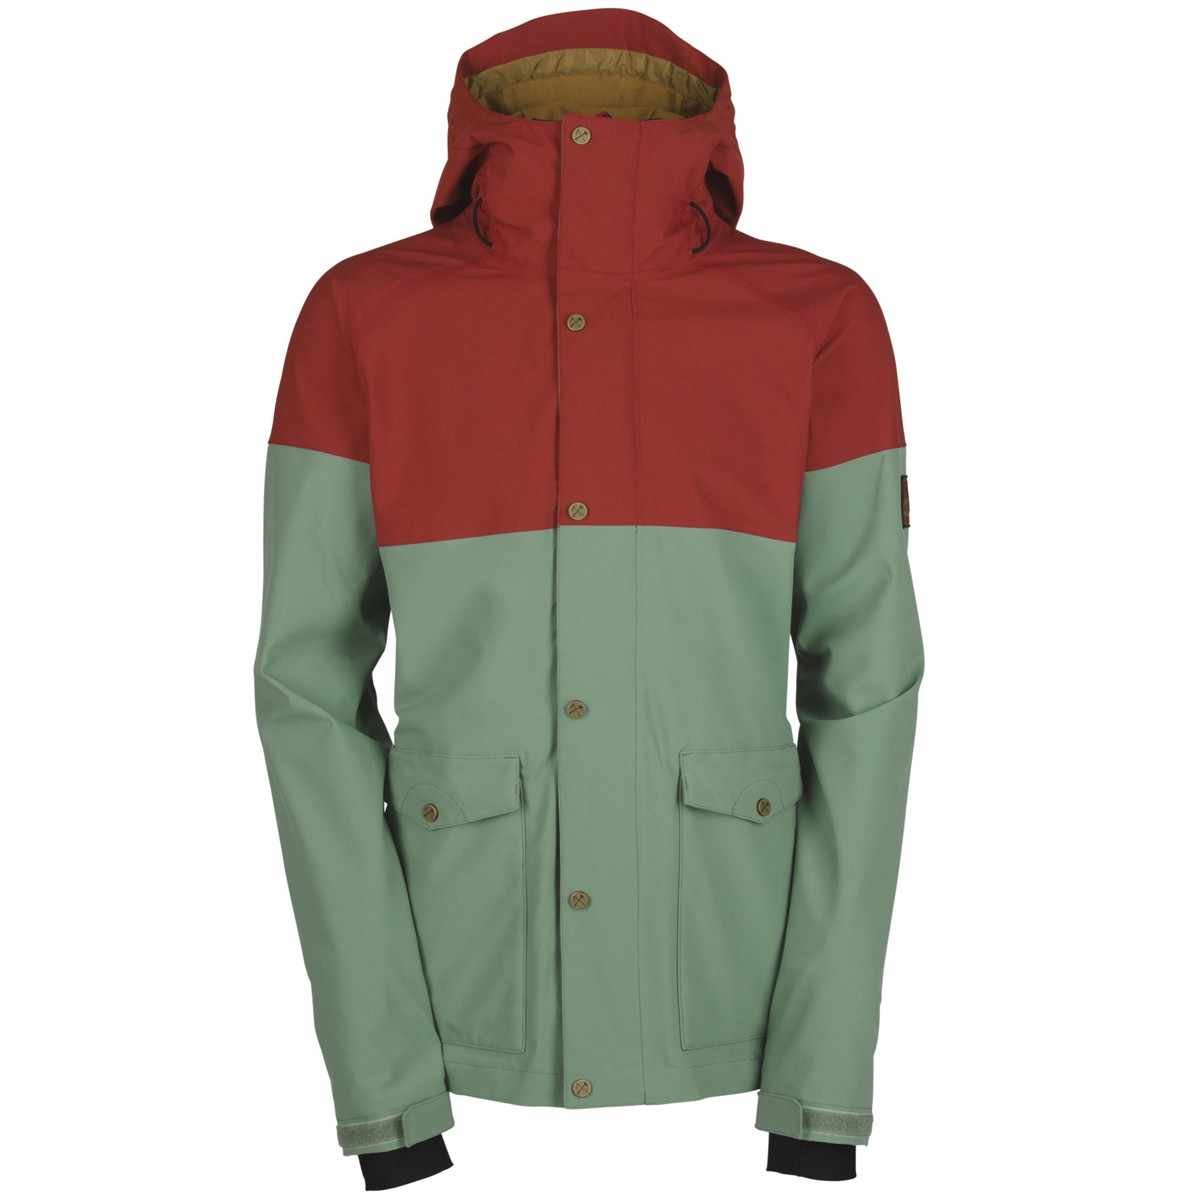 Bonfire Tanner Jacket 2015 - Cadet/Red Rum - X